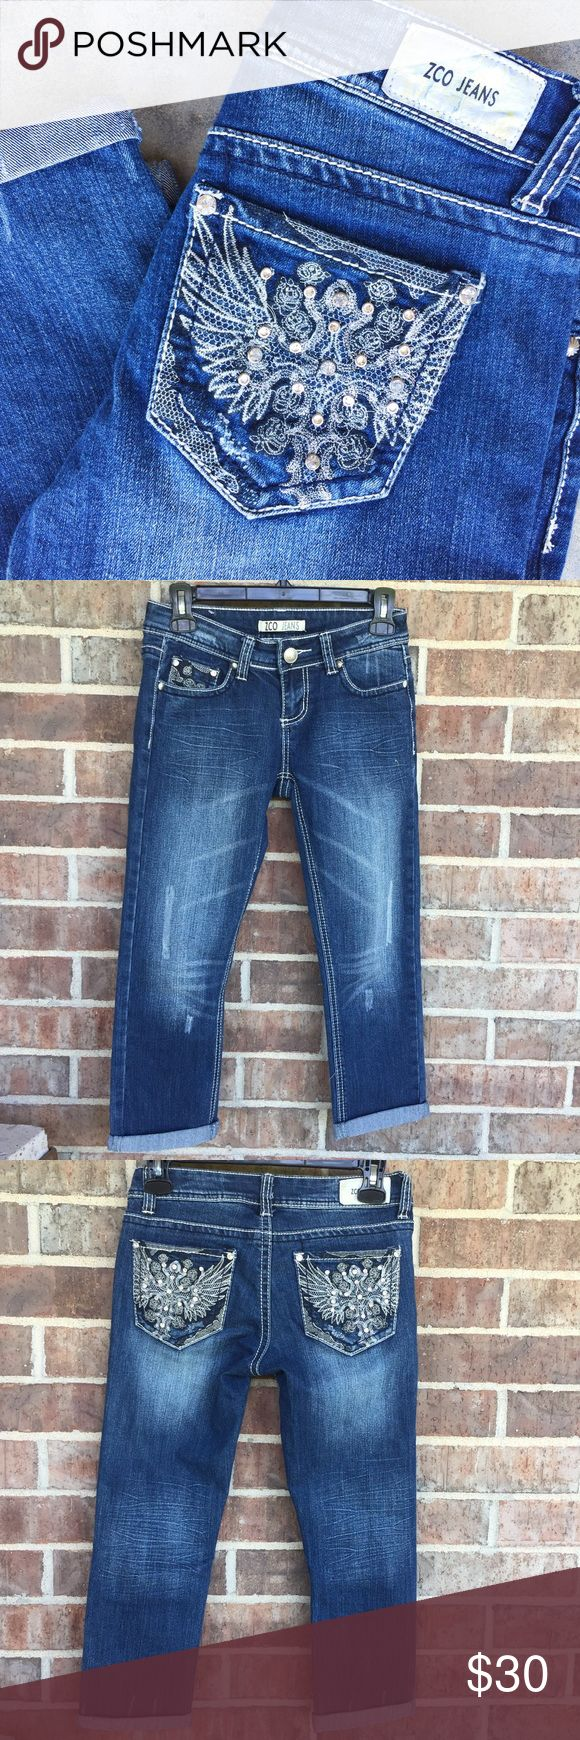 """ZCO Jeans Bling Capris Super cute capris by ZCO Jeans. Bling pockets on the back and cuffed bottoms that can be unrolled. Size 3, be sure and check measurements. Excellent condition - never worn. Waist: about 14"""". Length of capris with cuff: 30"""". ZCO Pants Capris"""